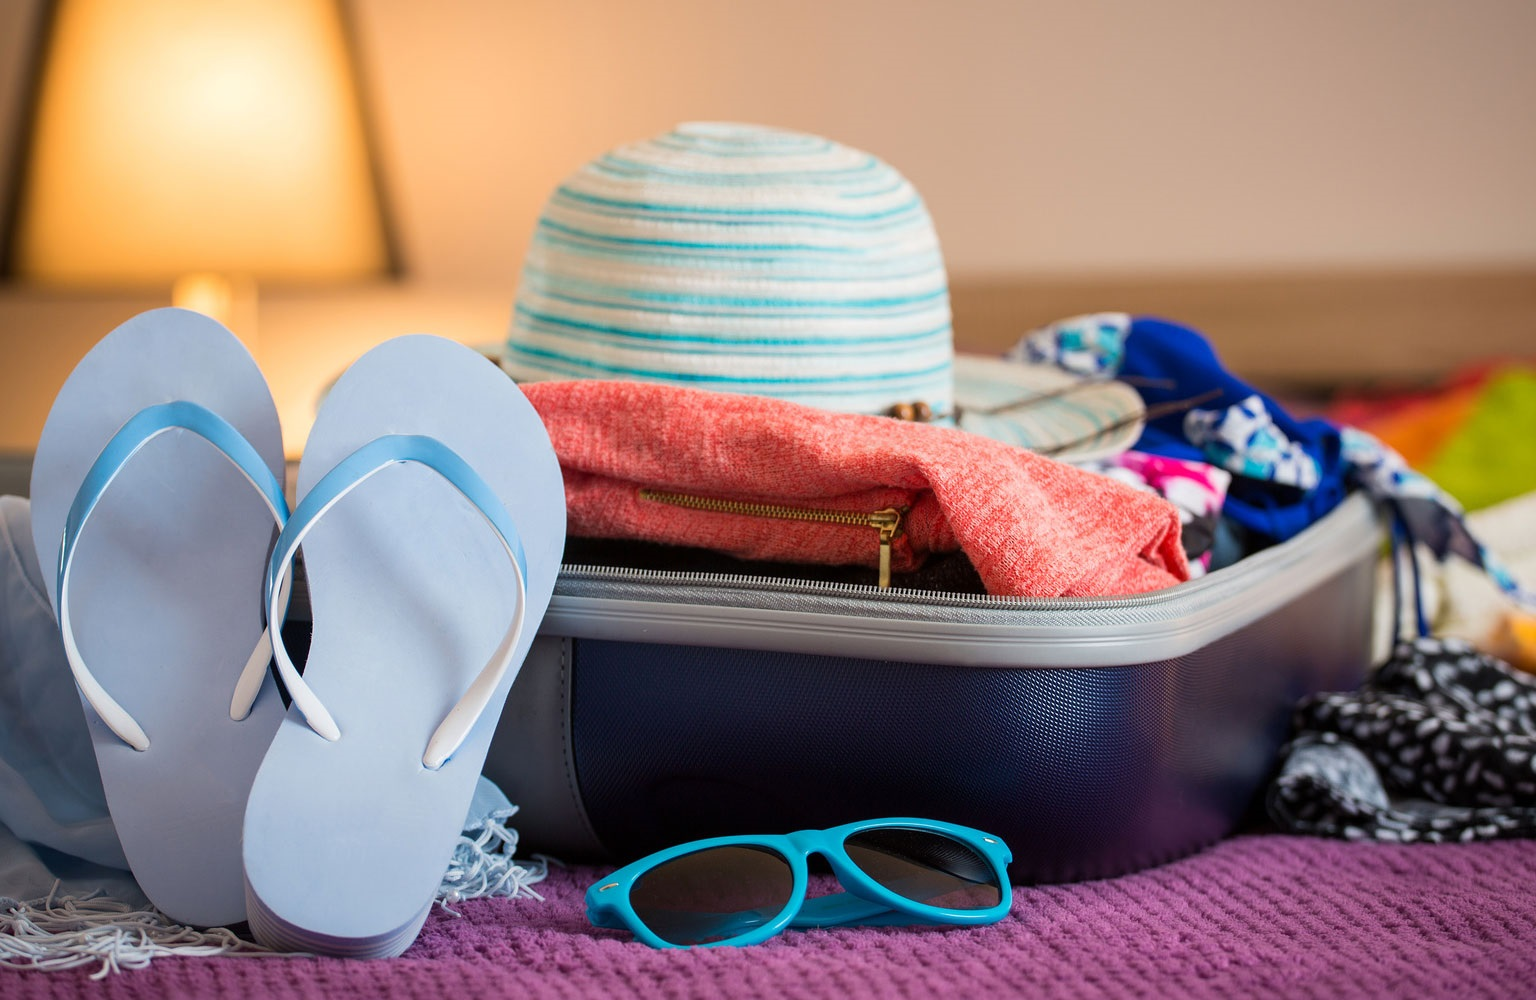 In my bag I packed…your guide to what to take on your staycation